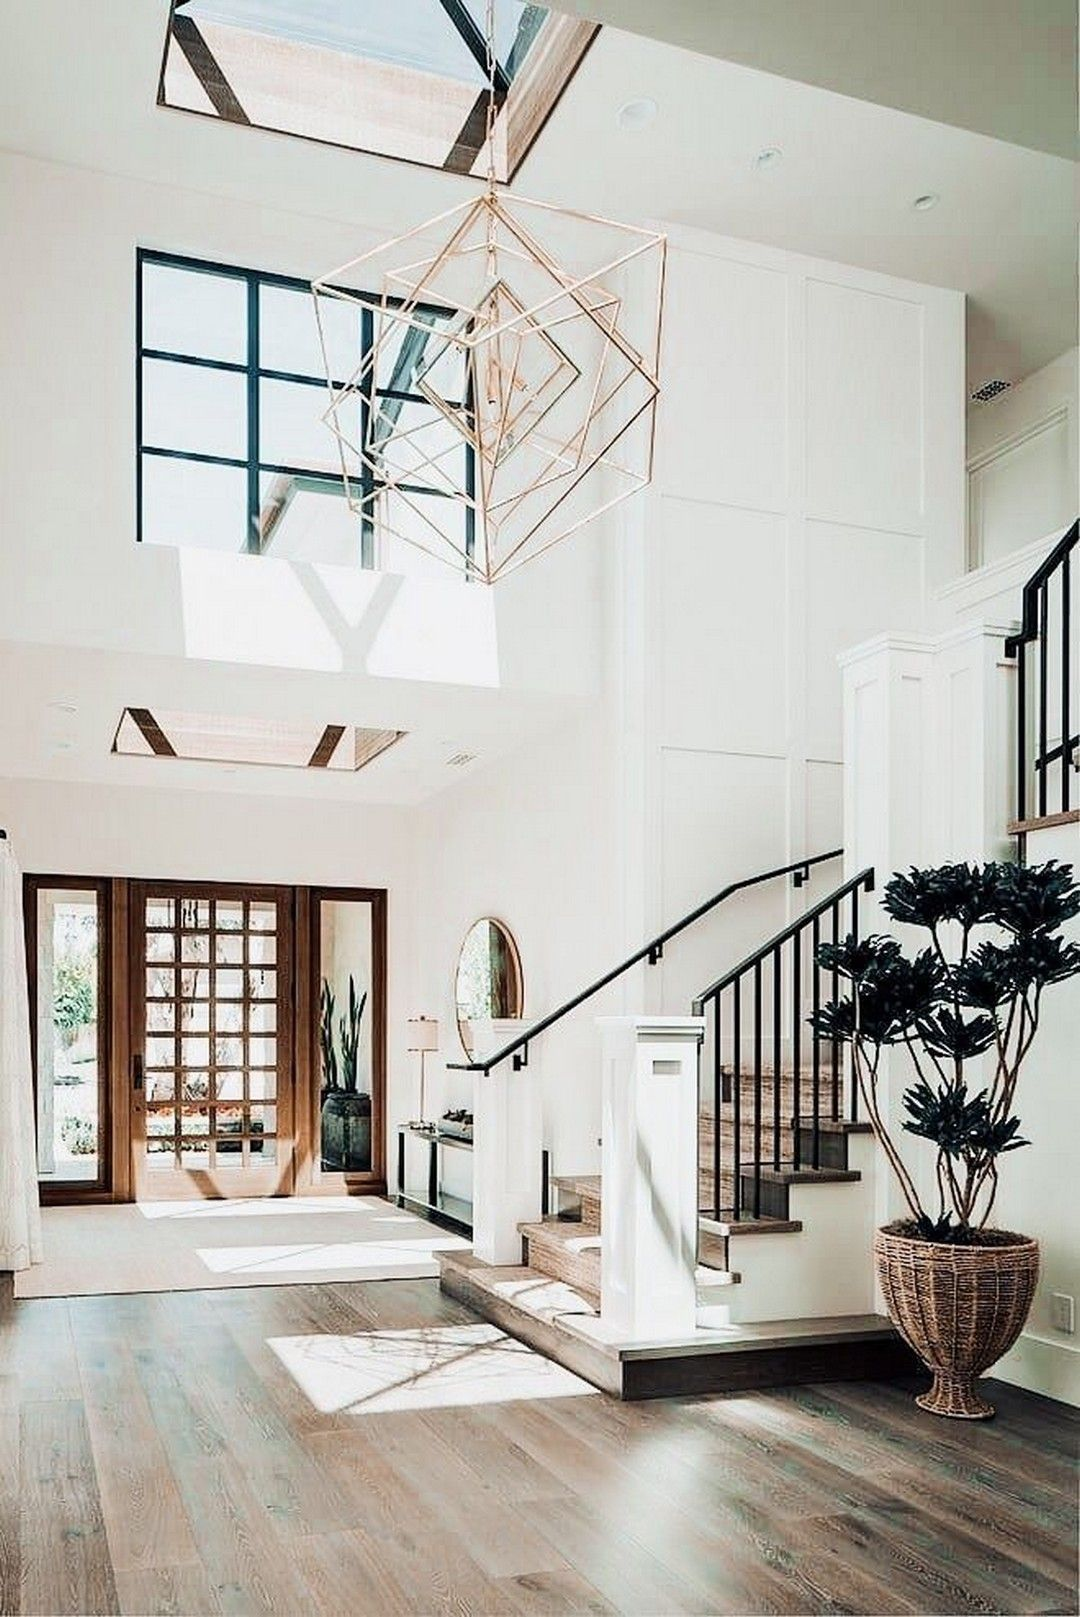 My Interior Design Style Is a Blend Of Minimalism, Mid-century Modern, Scandinavian and SoCal... -  My Interior Design Style Is a Blend Of Minimalism, Mid-century Modern, Scandinavian and SoCal vibes - #besthomedecorideas #Blend #design #diyInteriordesign #diykitchenprojects #interior #Midcentury #Minimalism #modern #rustichouse #Scandinavian #SoCal #style